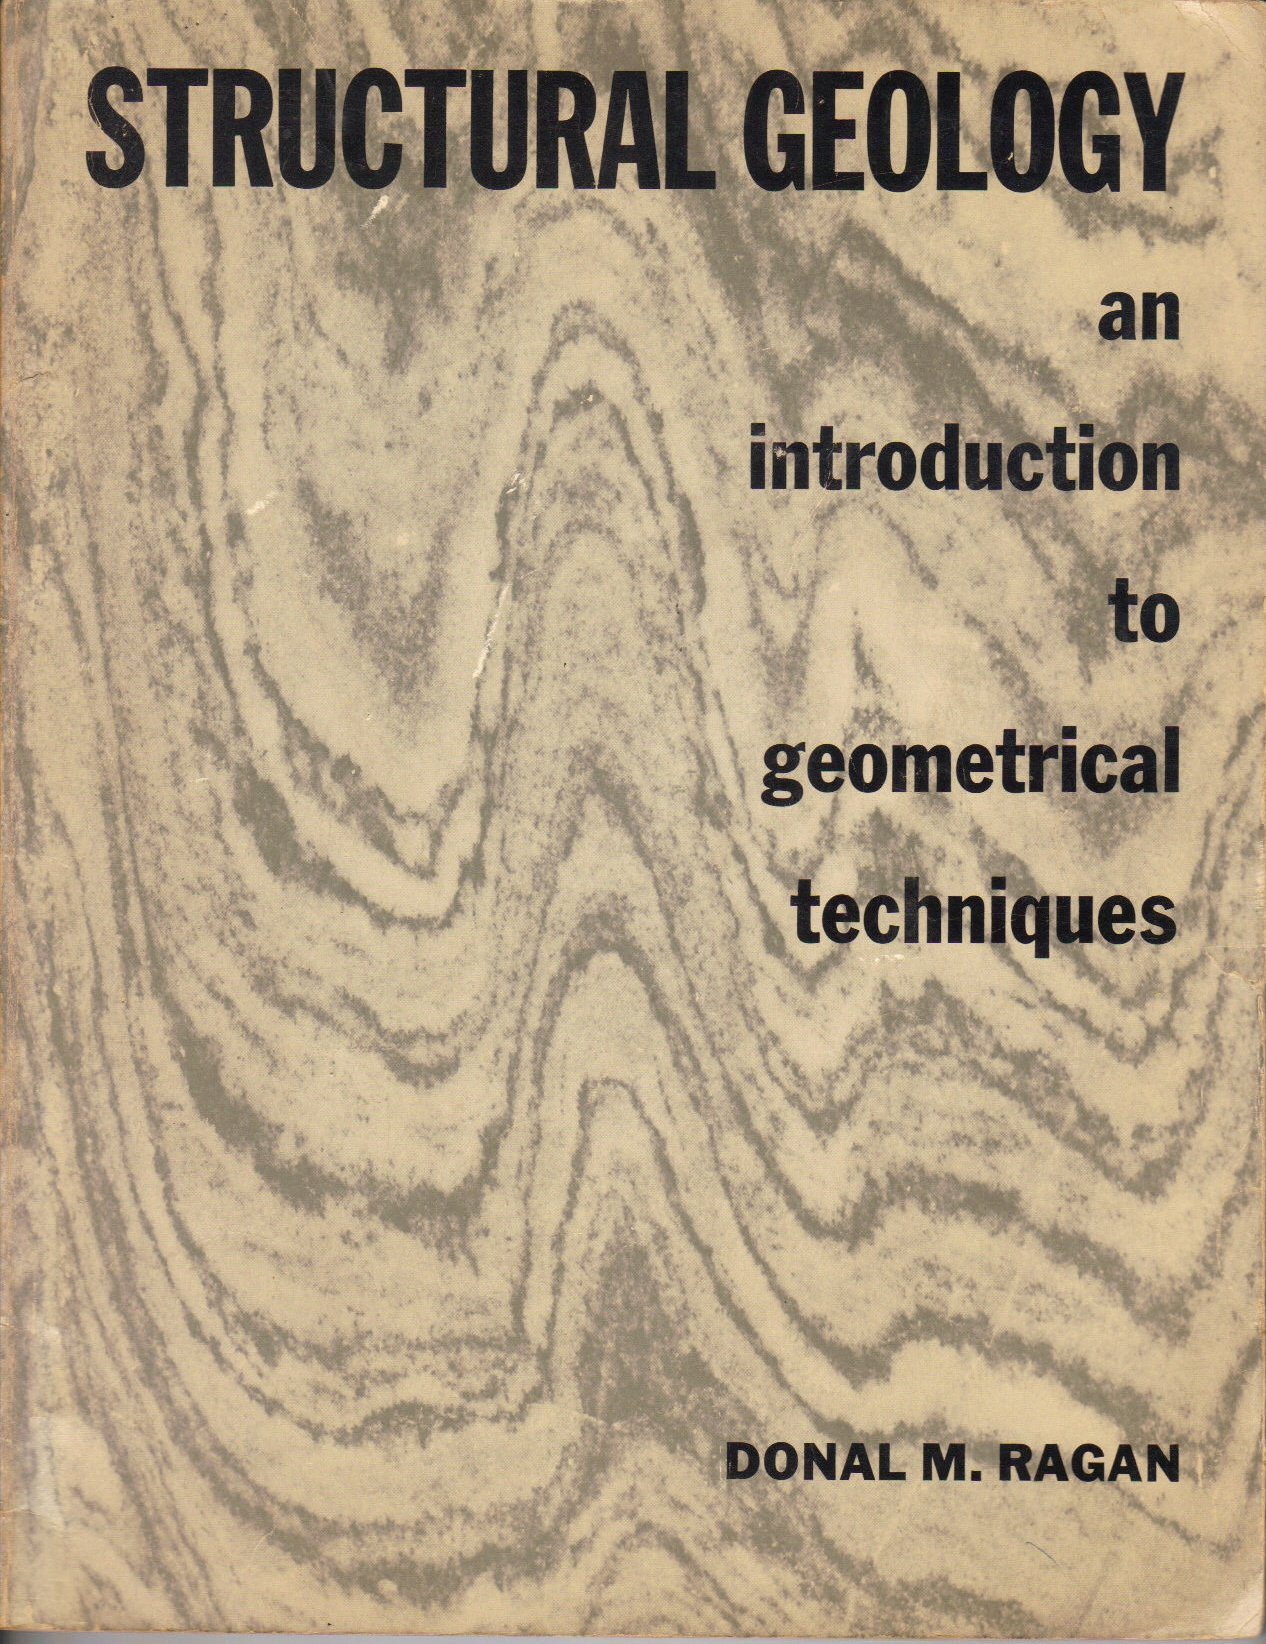 Structural geology : an introduction to geometrical techniques